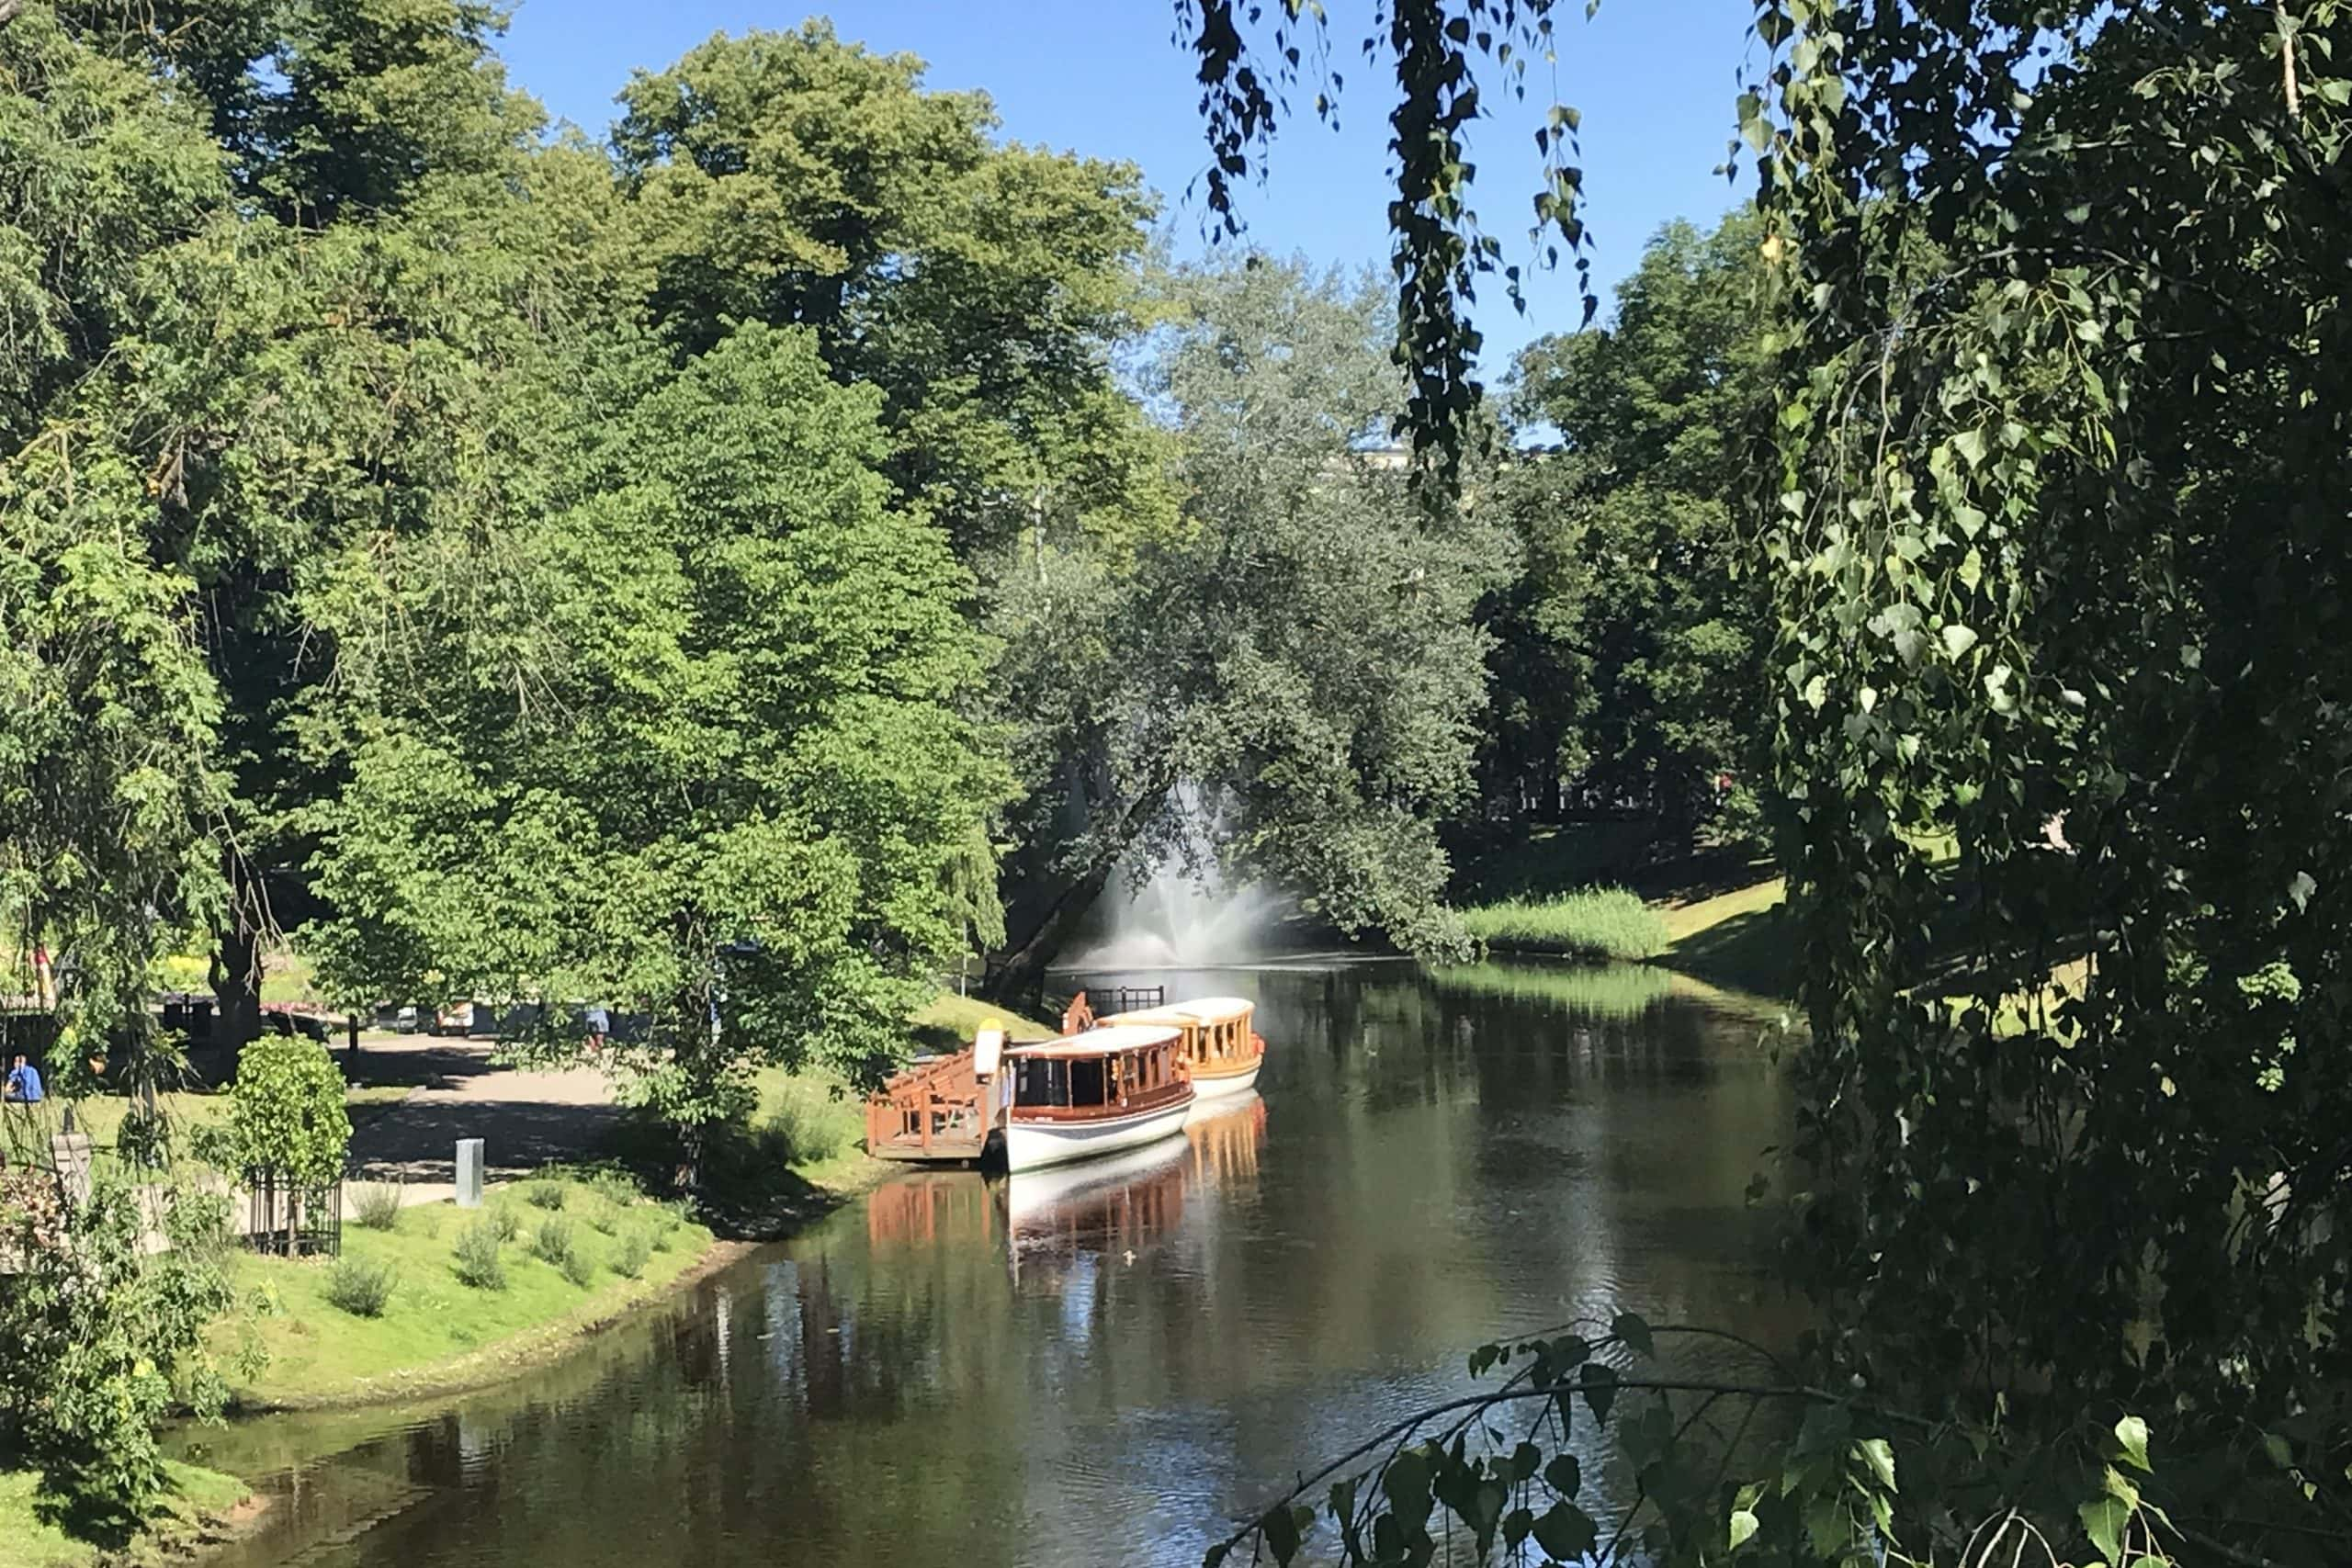 canal and wooden boat surrounded by trees in riga in latvia